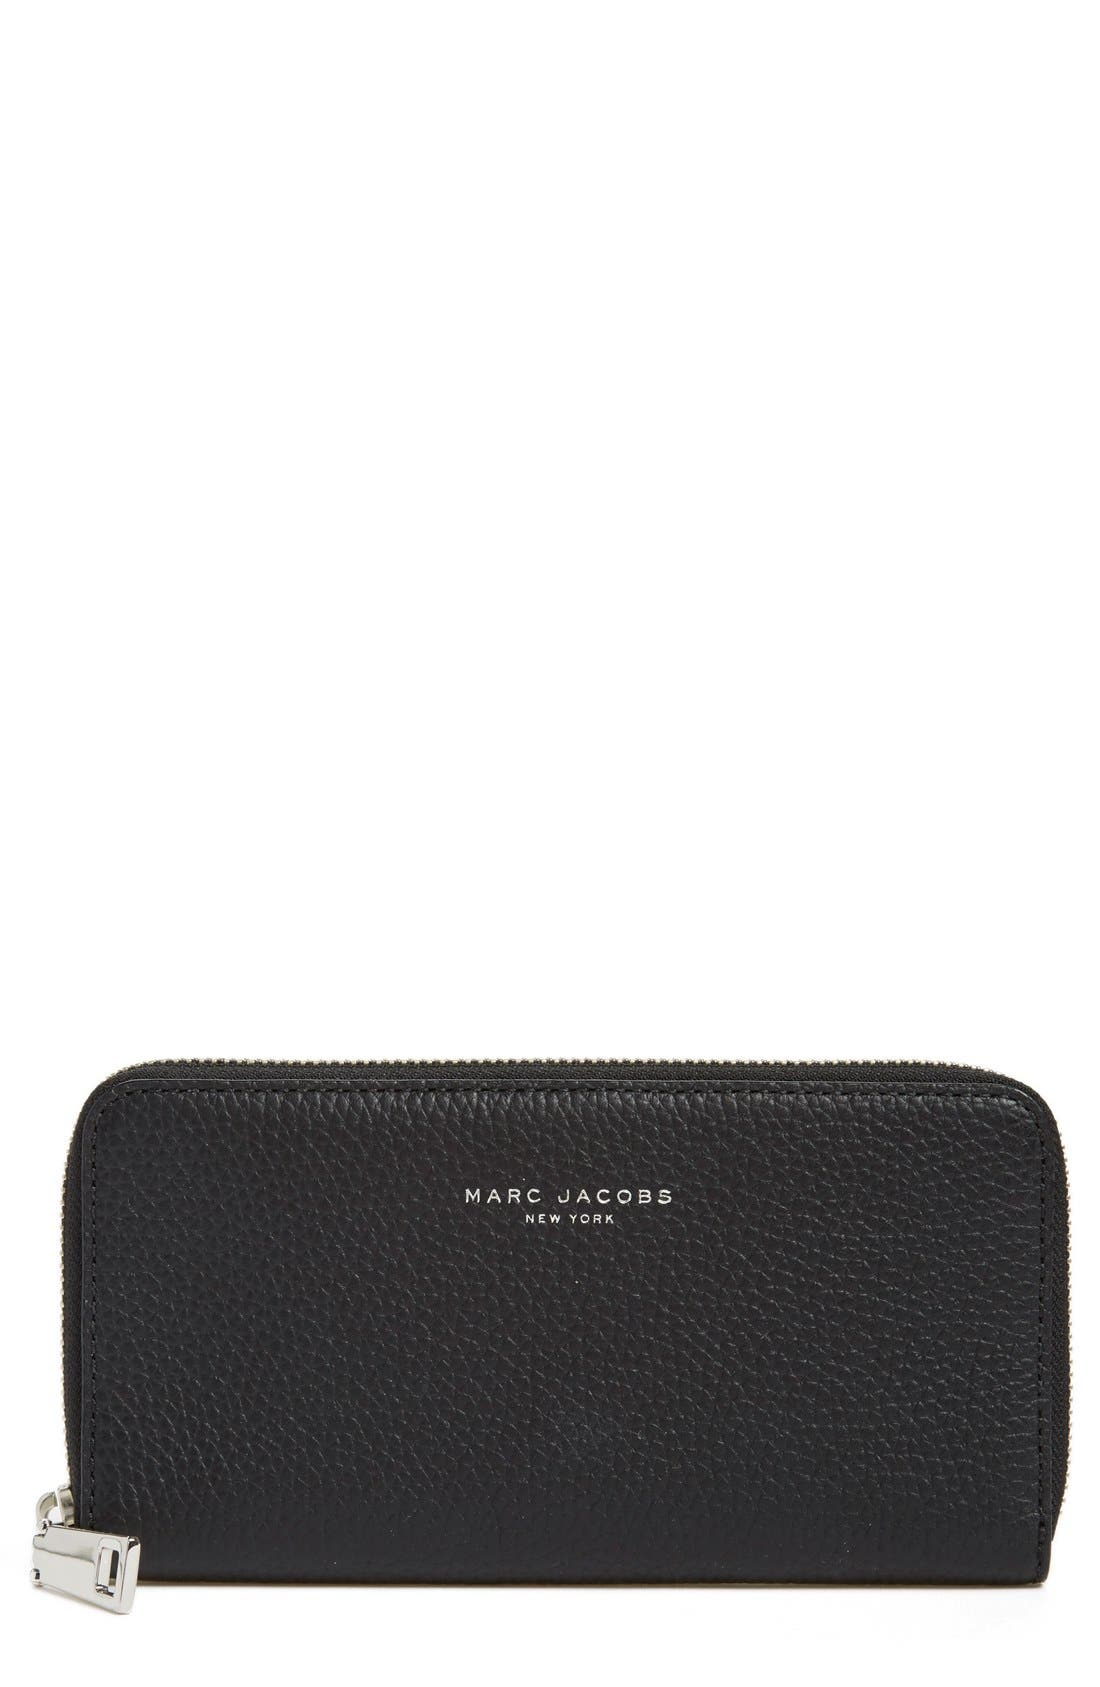 'Pike Place Vertical Zippy' Leather Zip Around Wallet, Main, color, 001